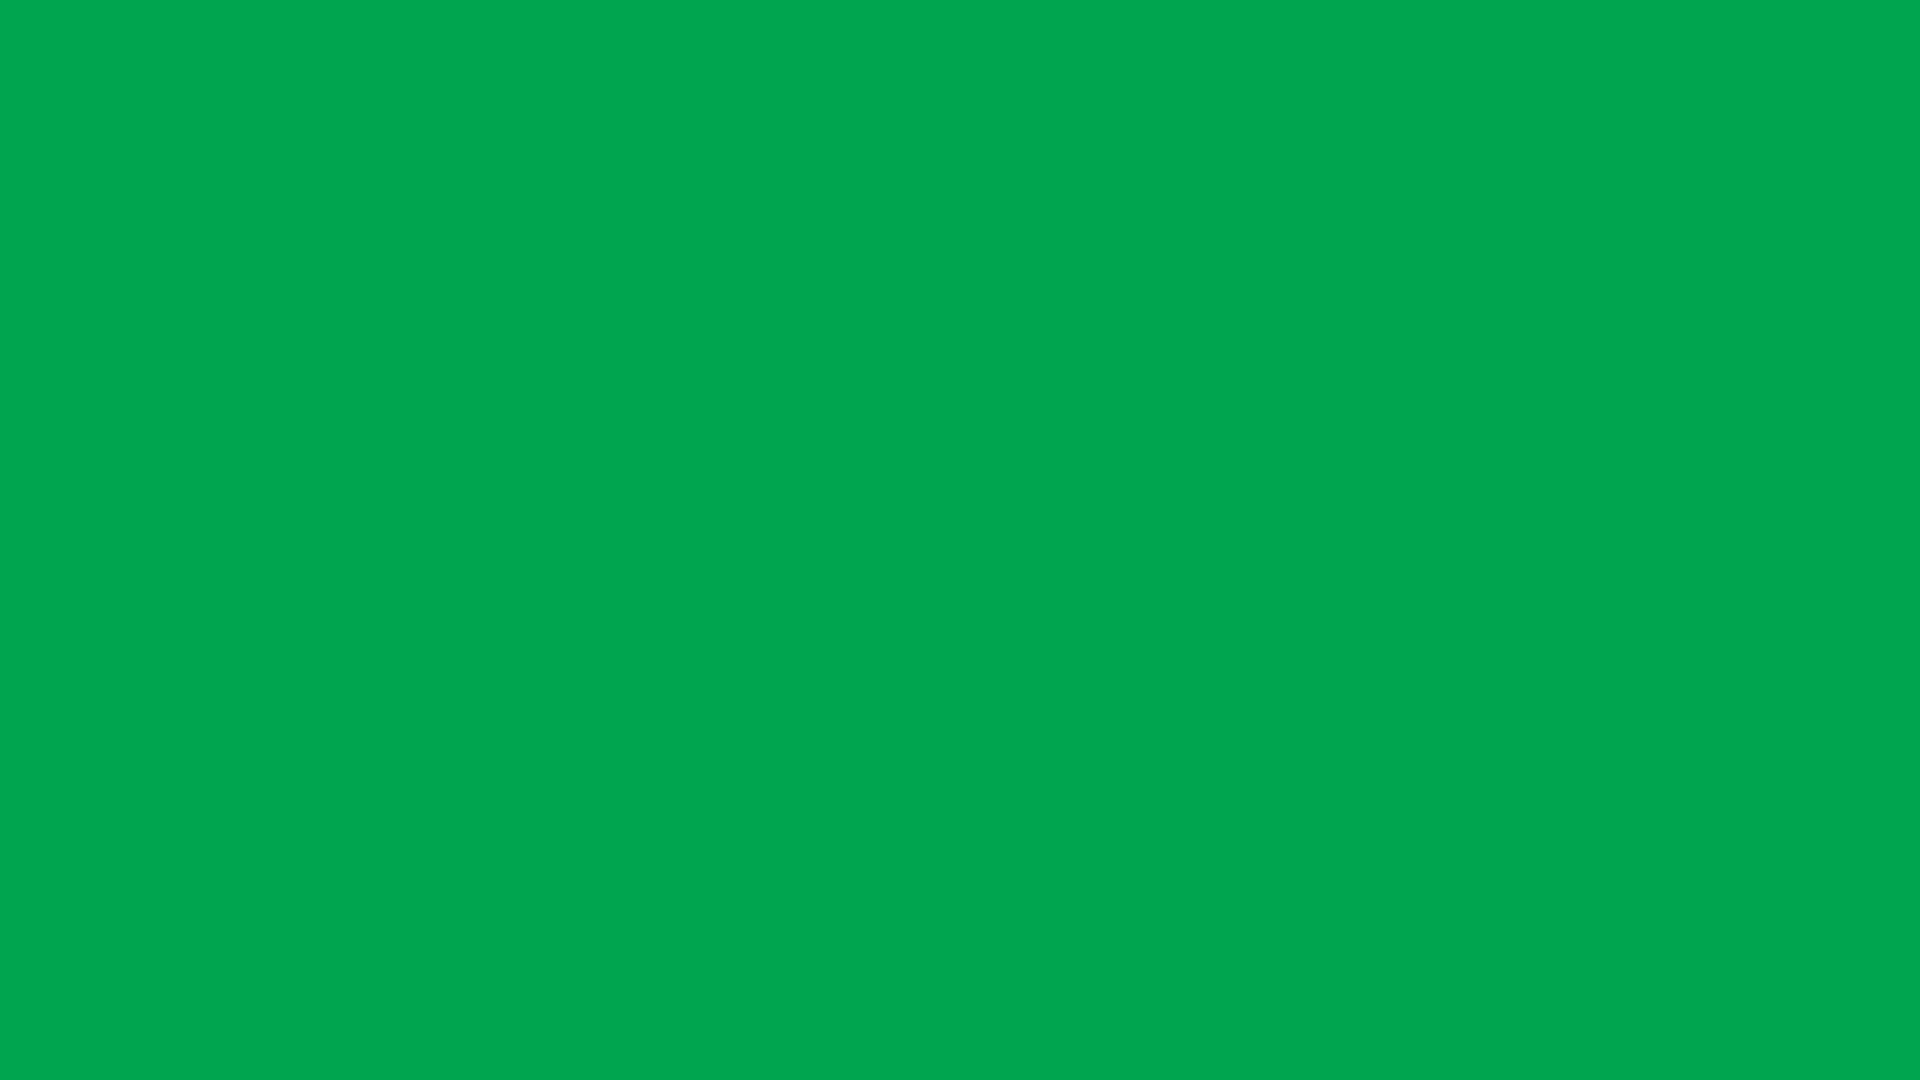 1920x1080 Green Pigment Solid Color Background